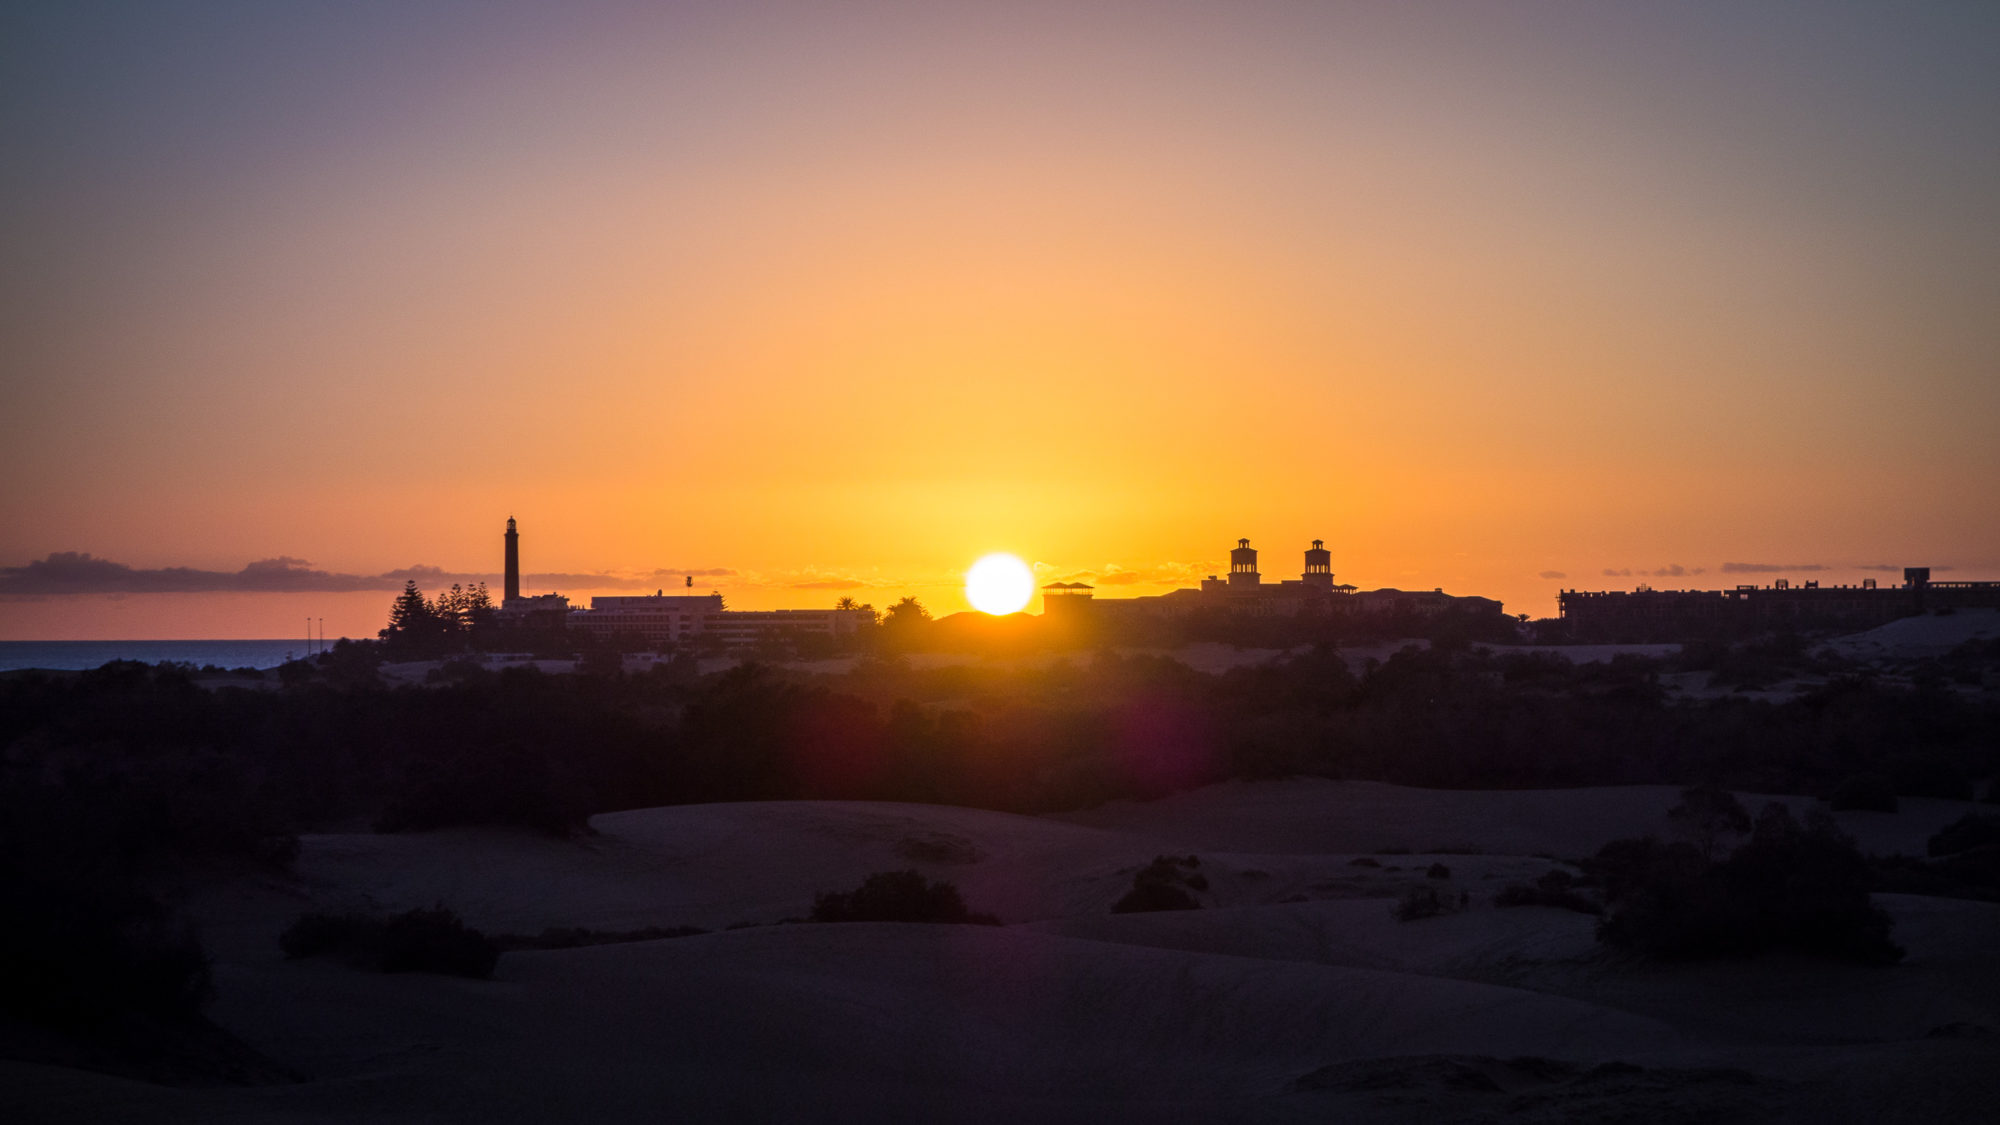 Sunset - Maspalomas